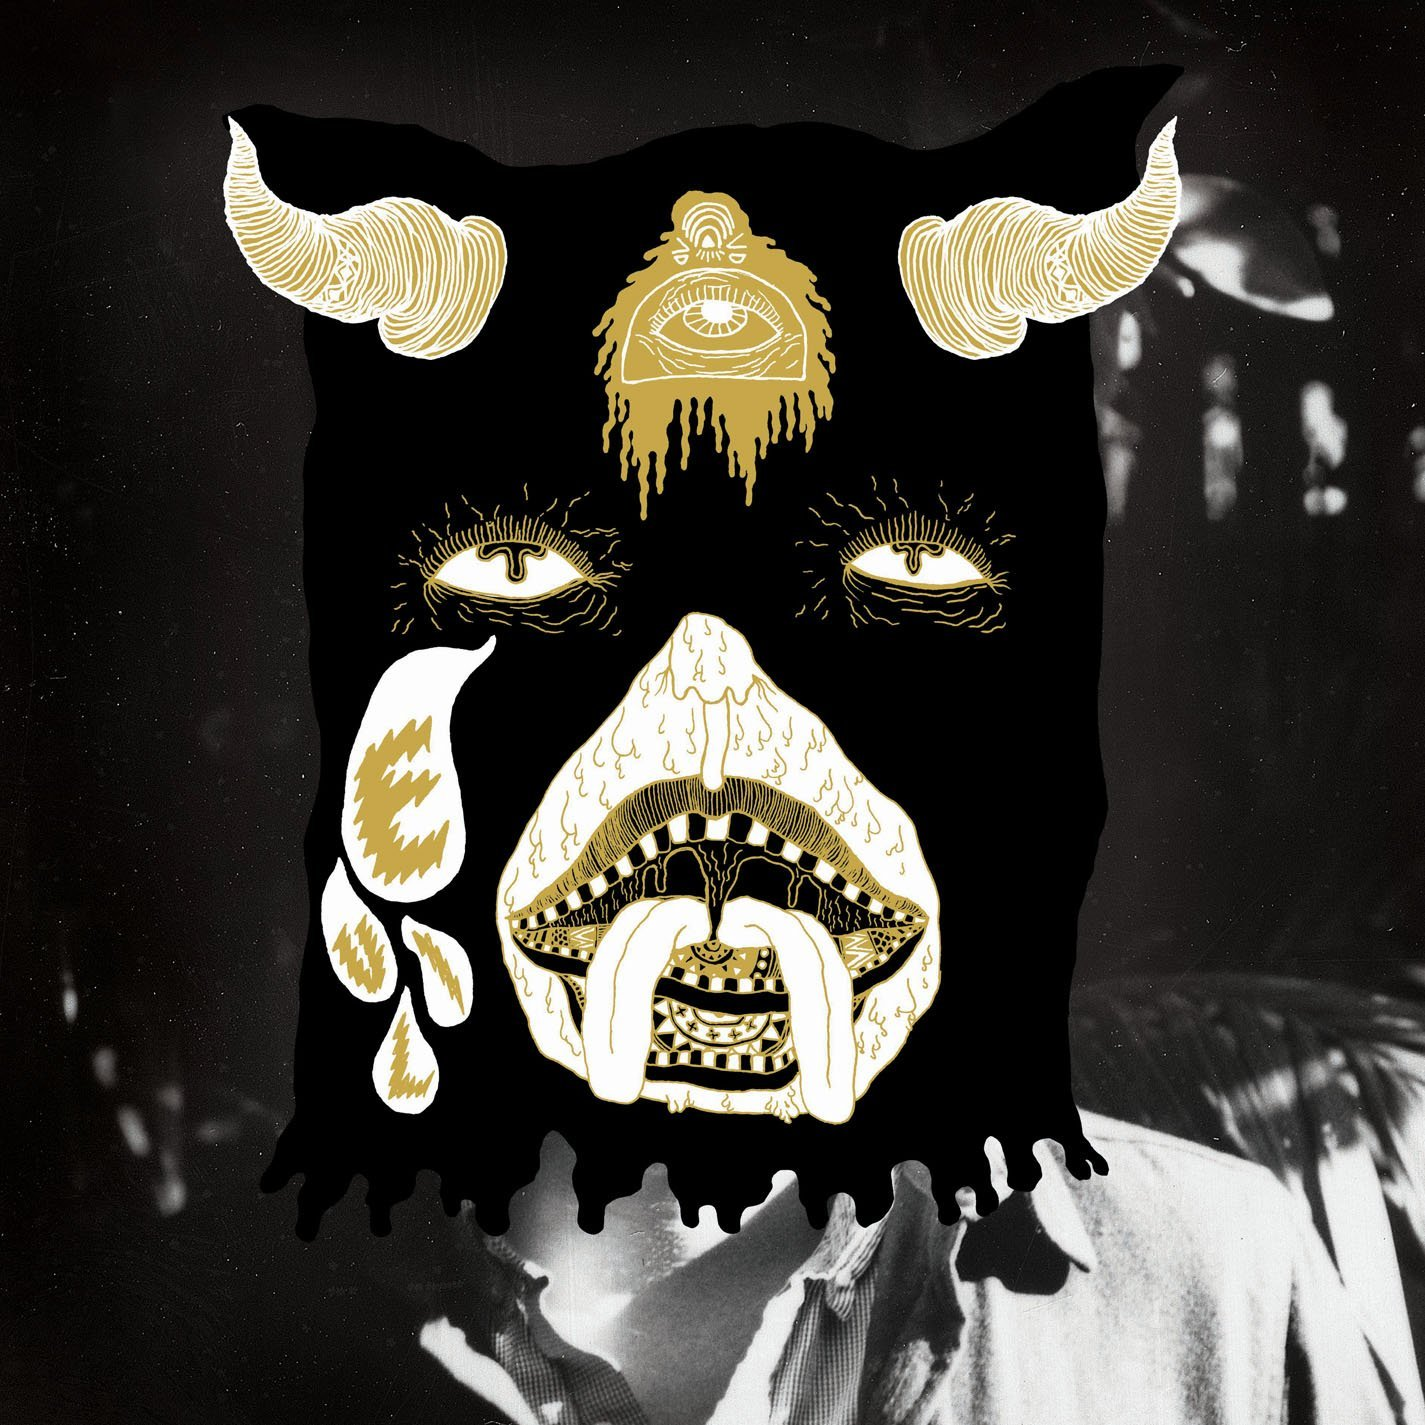 portugal the man - evil friends 2013